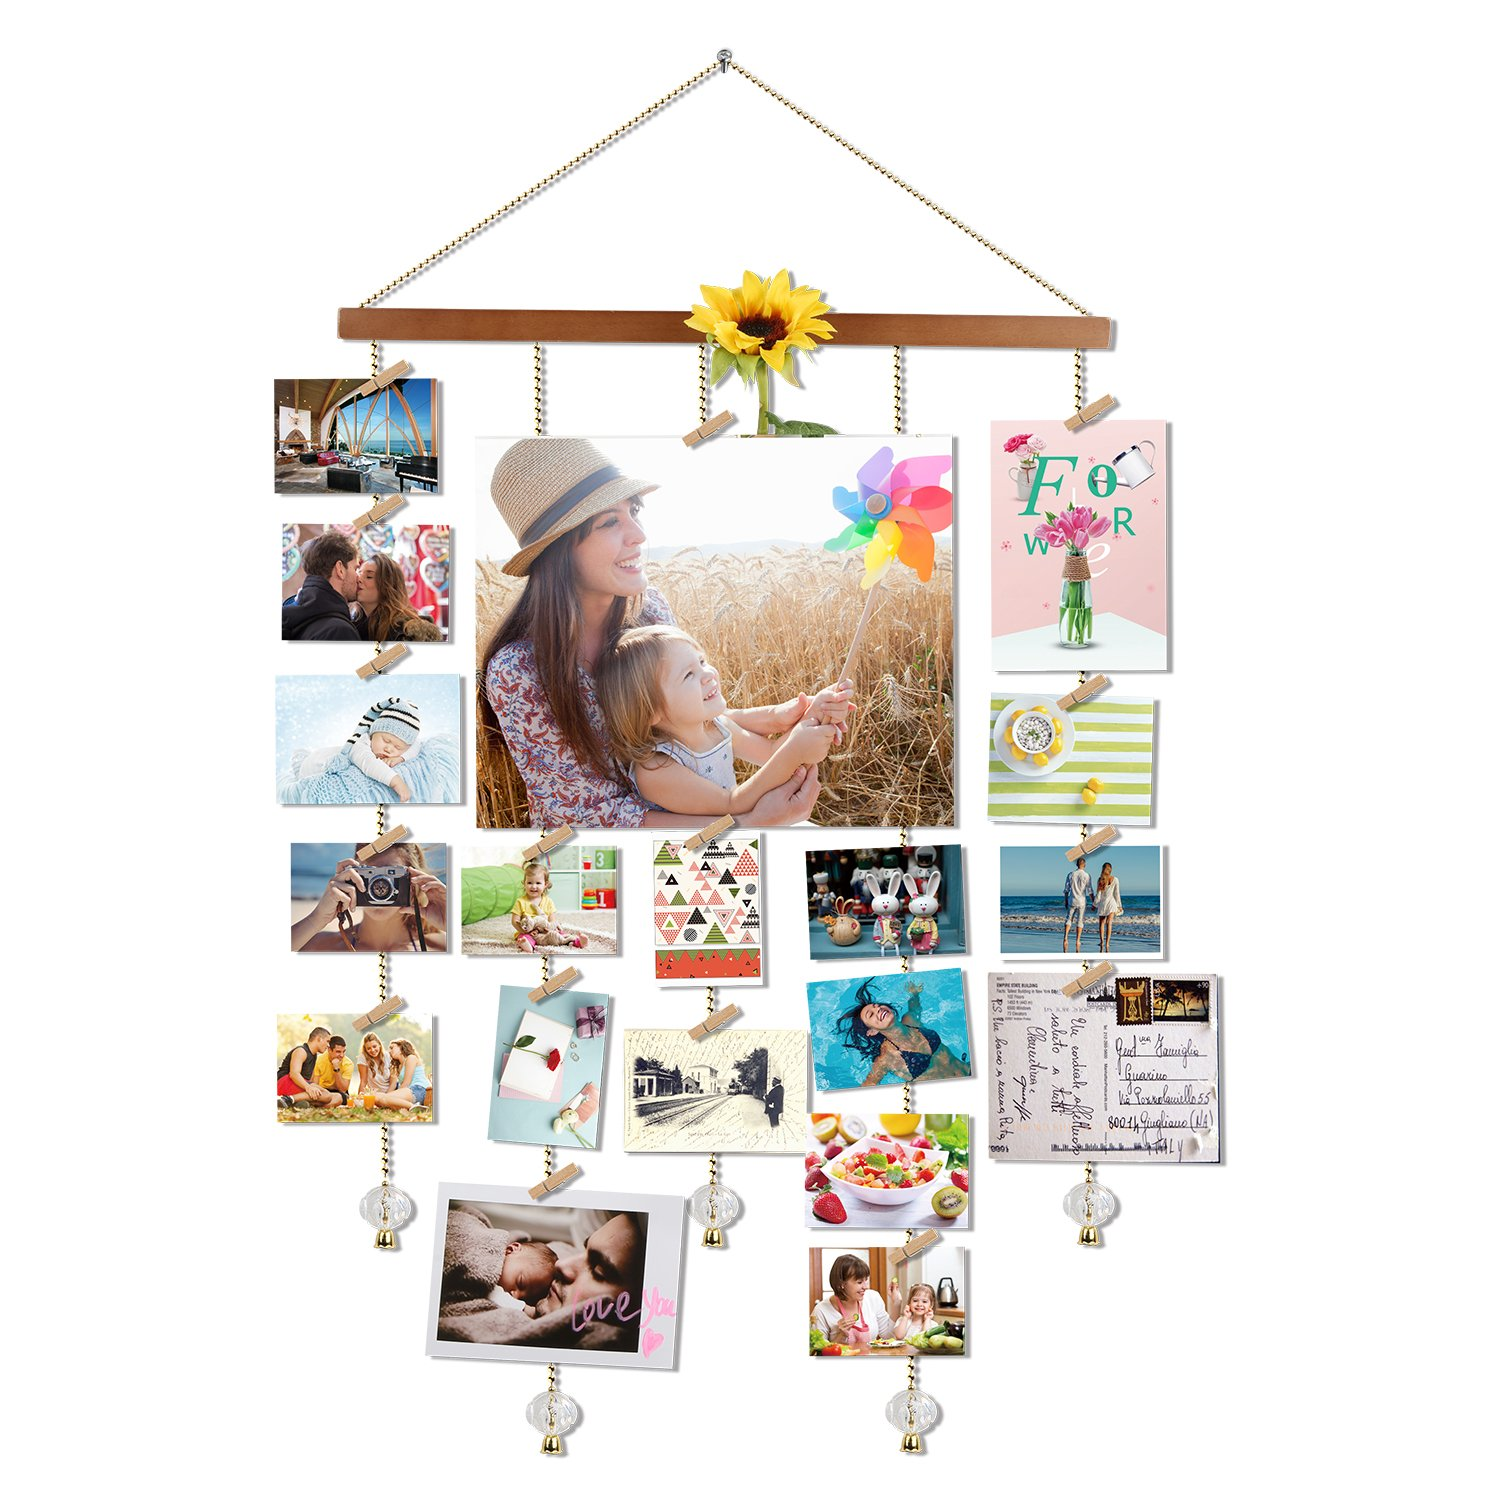 O-KIS Photo Display, Picture Frame Collage by Multi Photo Display with 20 Clips, Aged Walnut Wood, Golden Chain with Crystal Pendant,16×29 inch